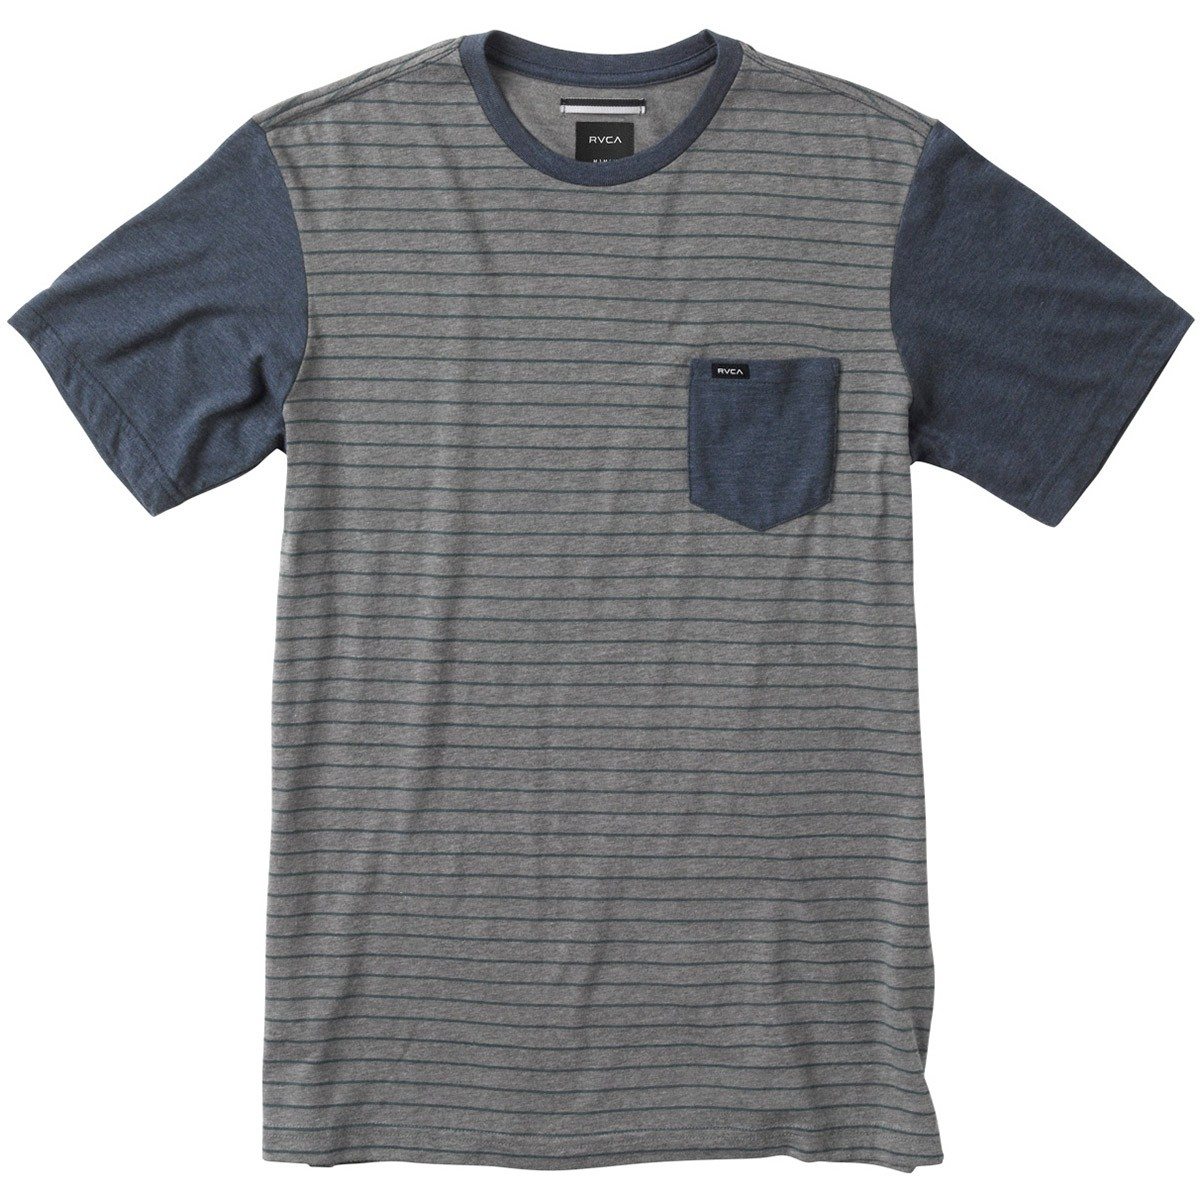 RVCA Change Up T-Shirt - Grey Noise/Midnight